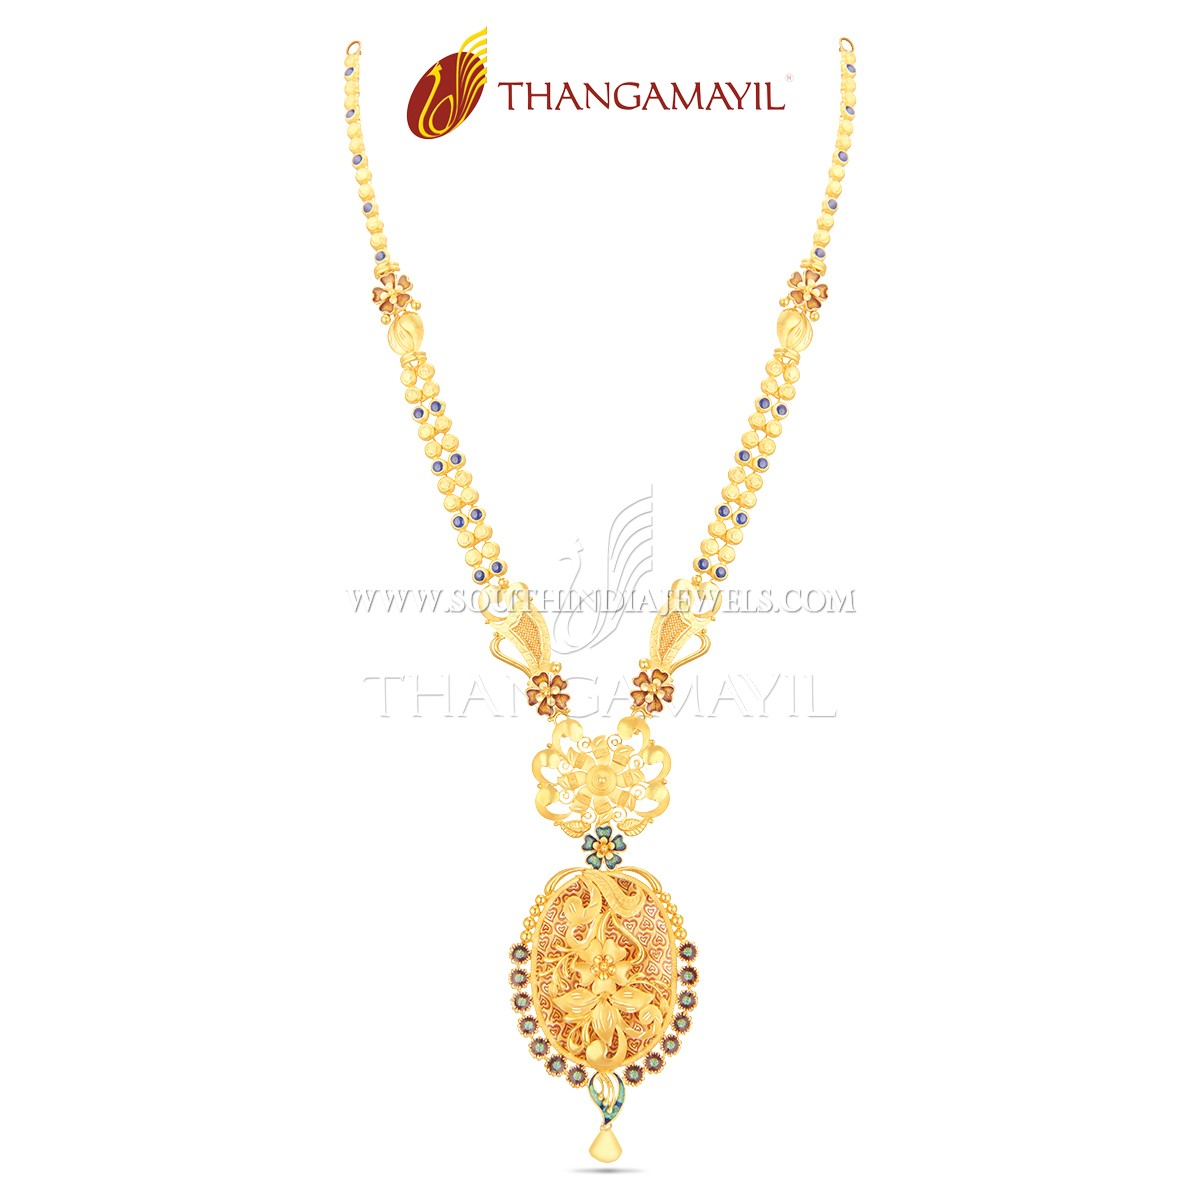 Gorgeous Gold Malai From Thanamayil Jewellery